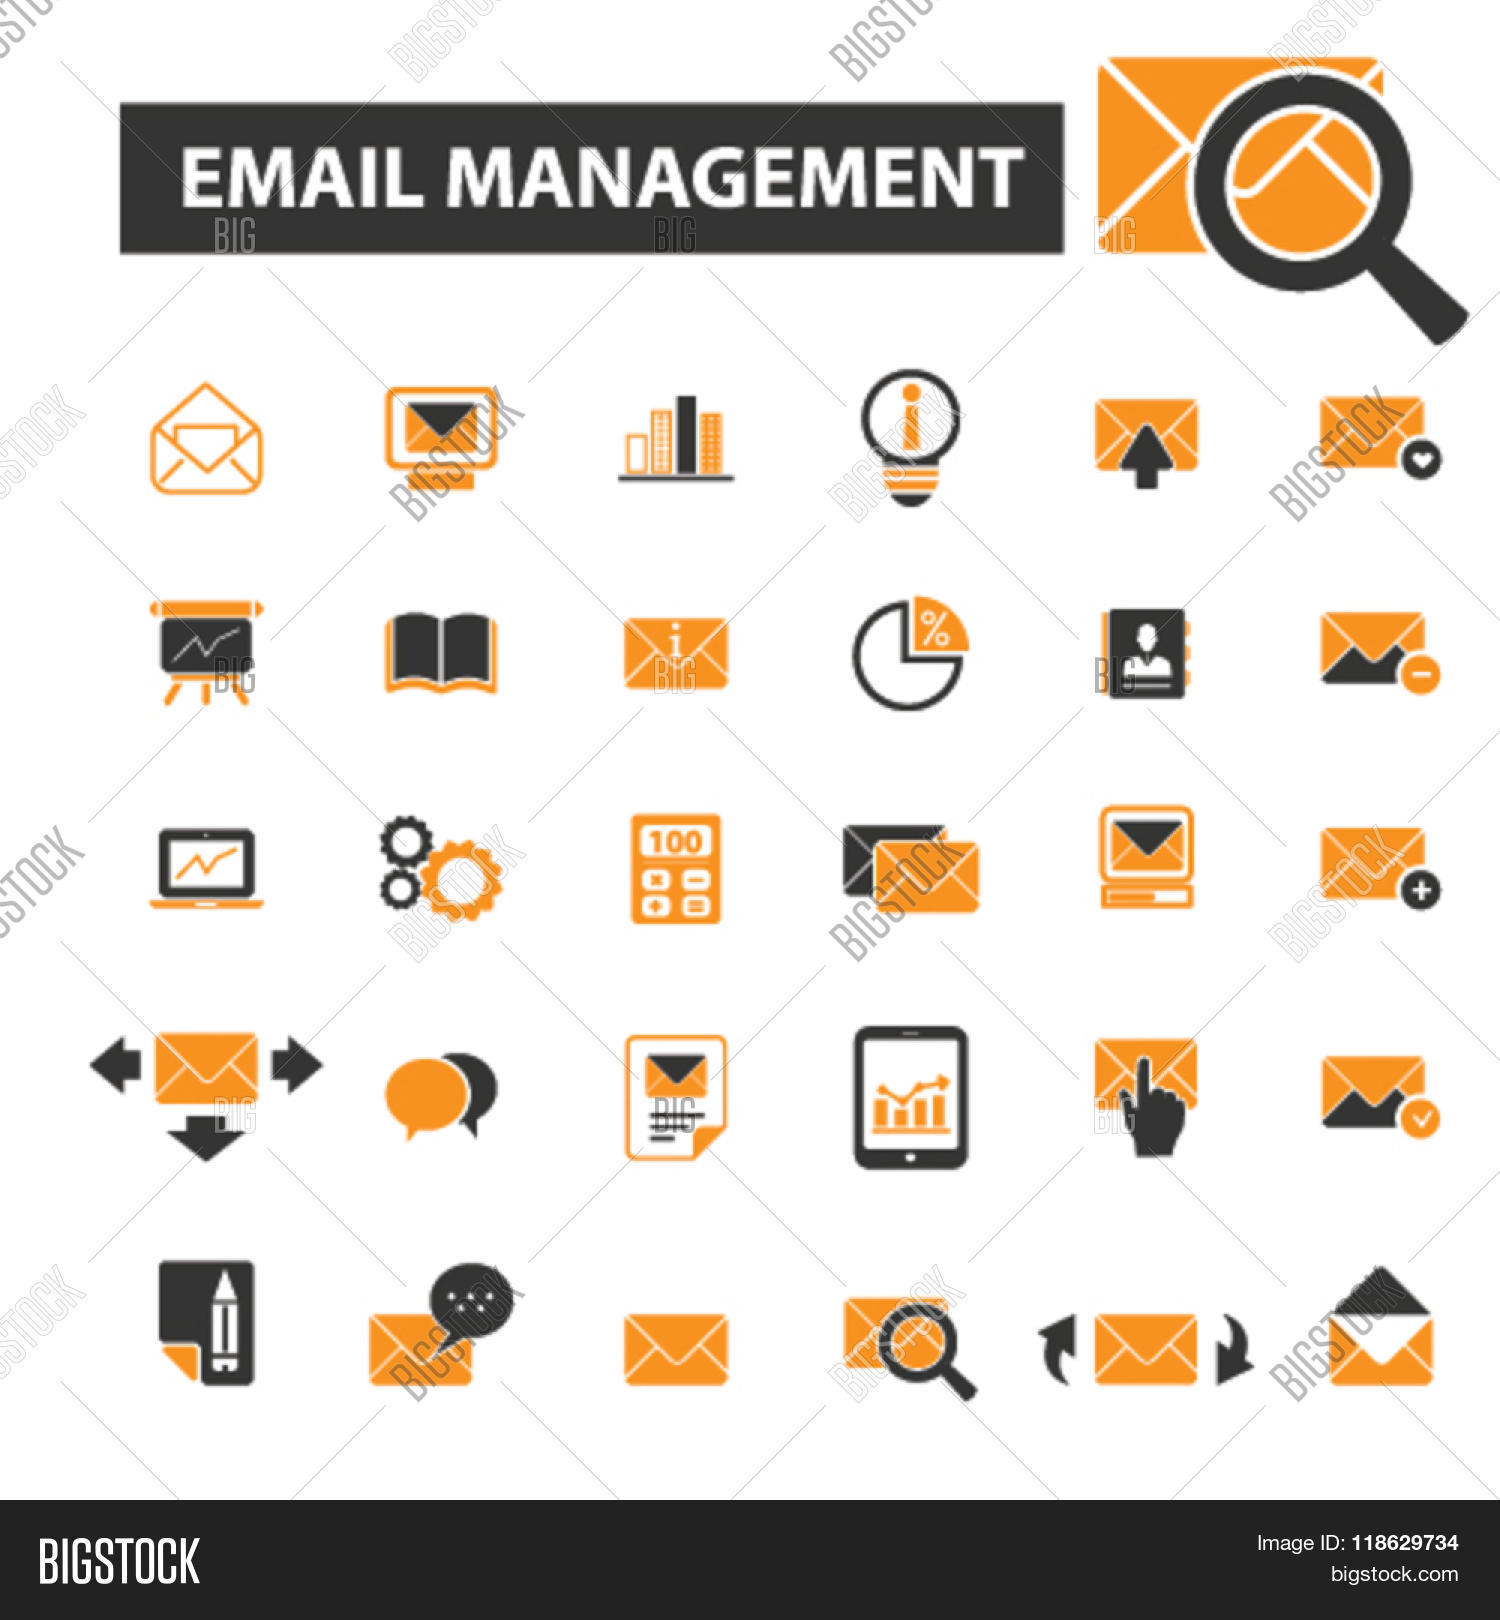 Remarkable email icon vector images